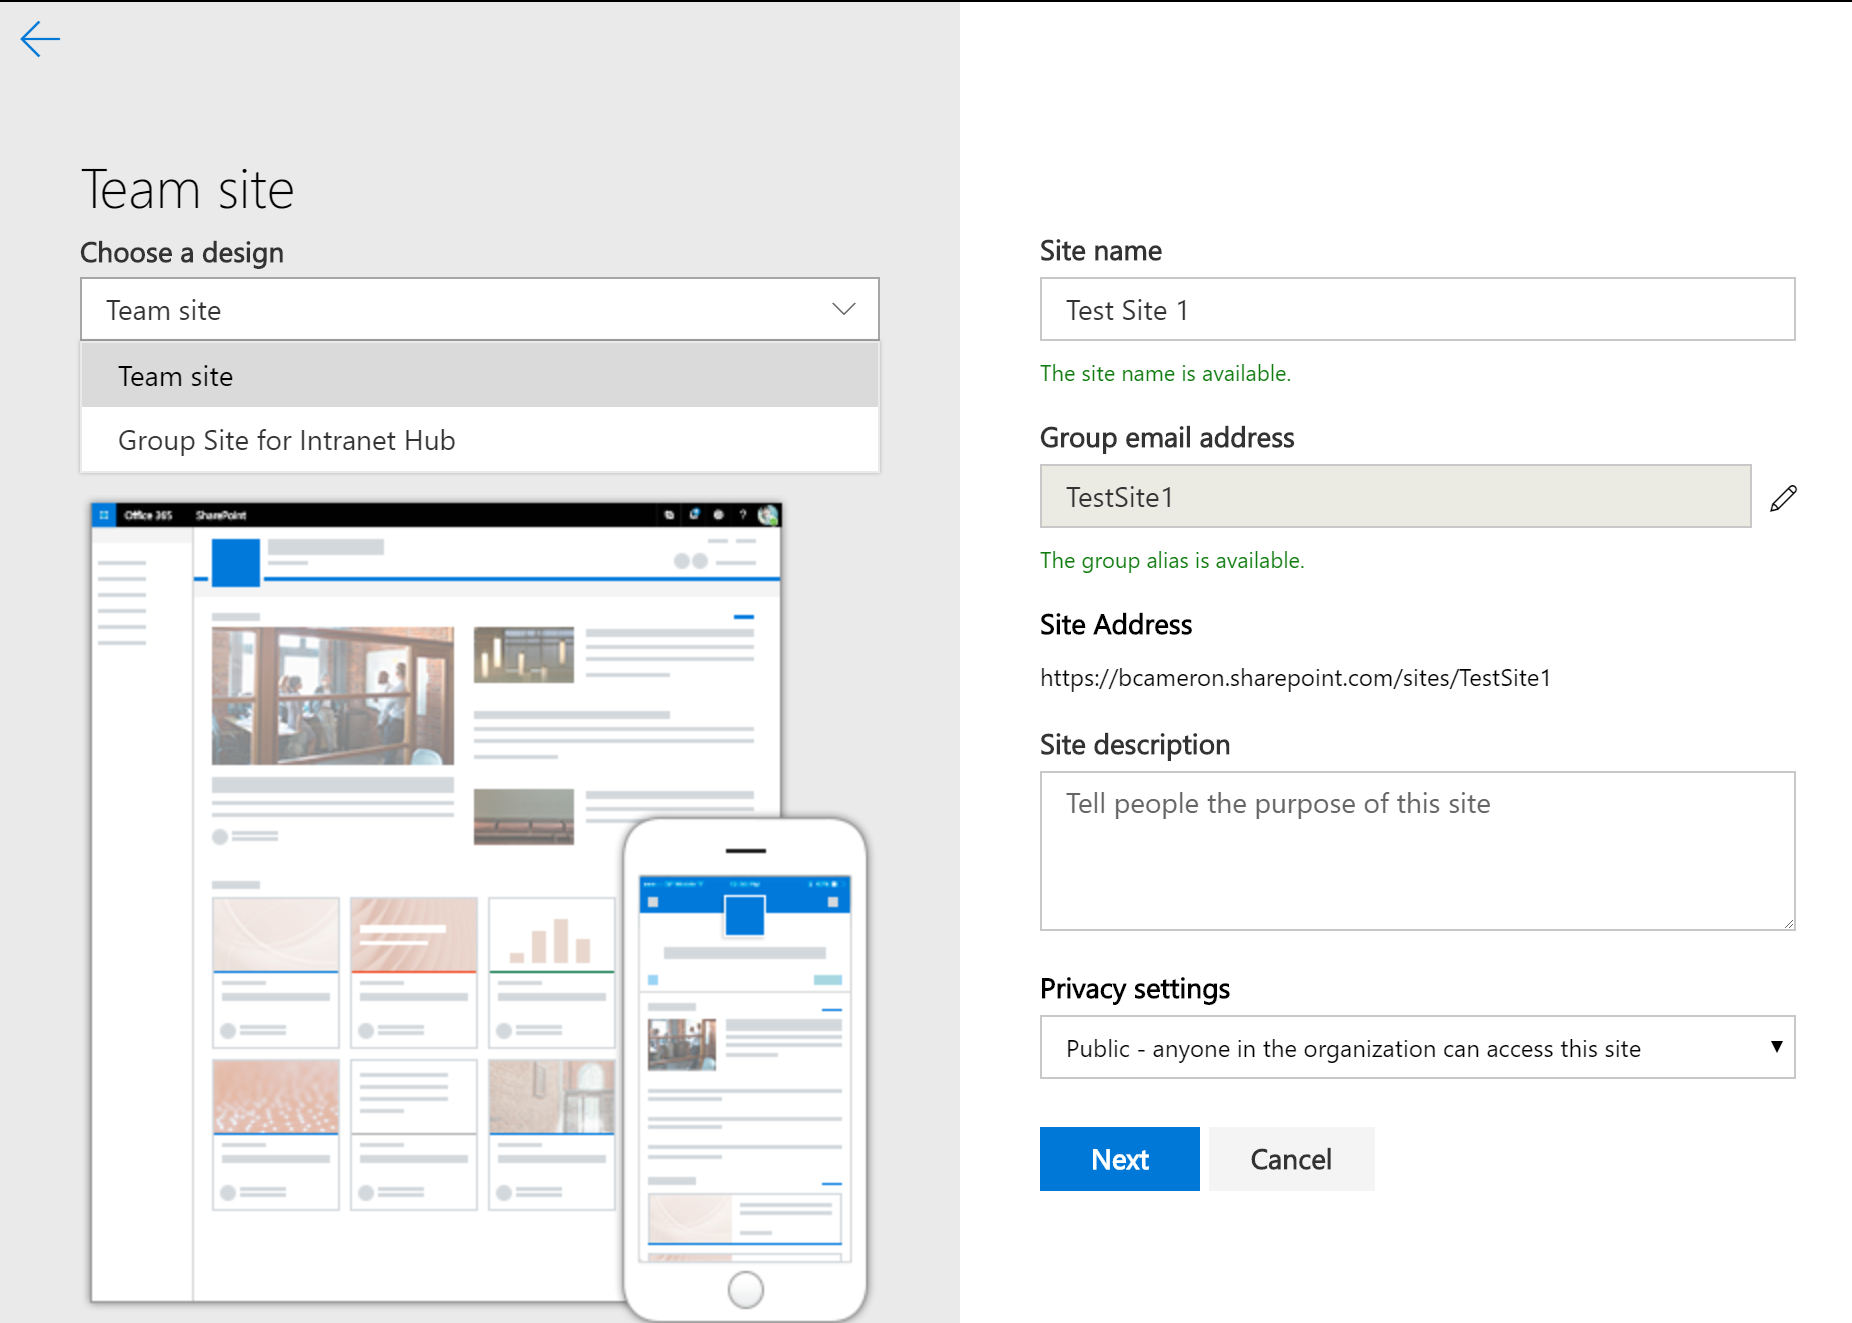 Auto Provision Office 365 sites in a Hub Site using Site Designs